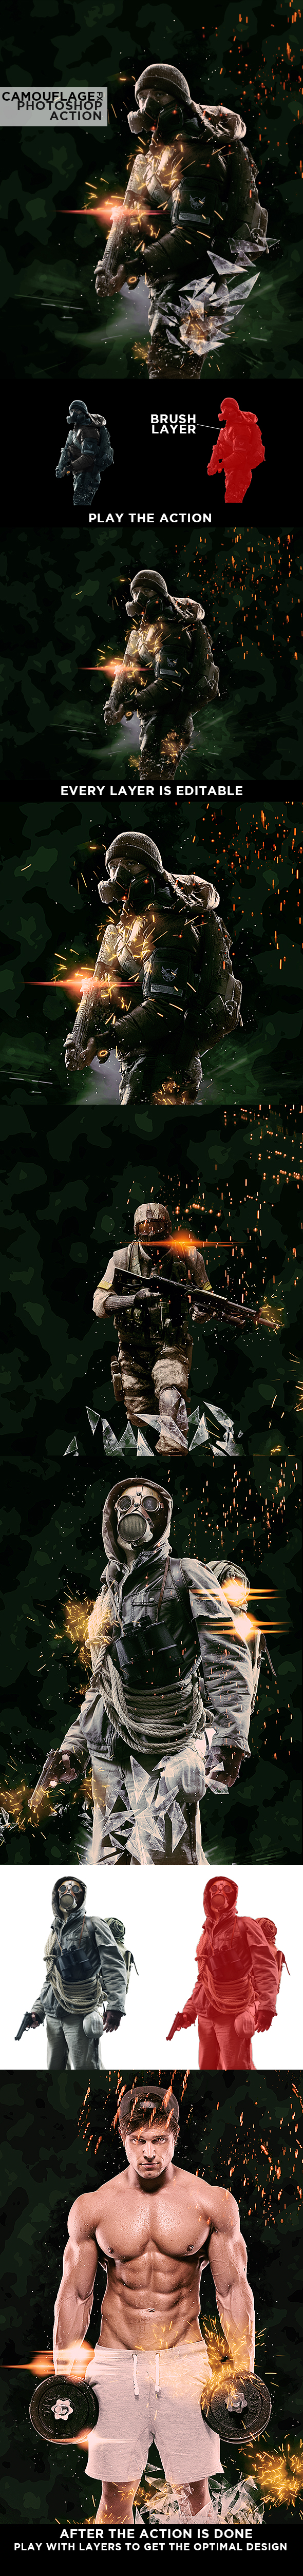 Camouflage Army Ps Action - Actions Photoshop